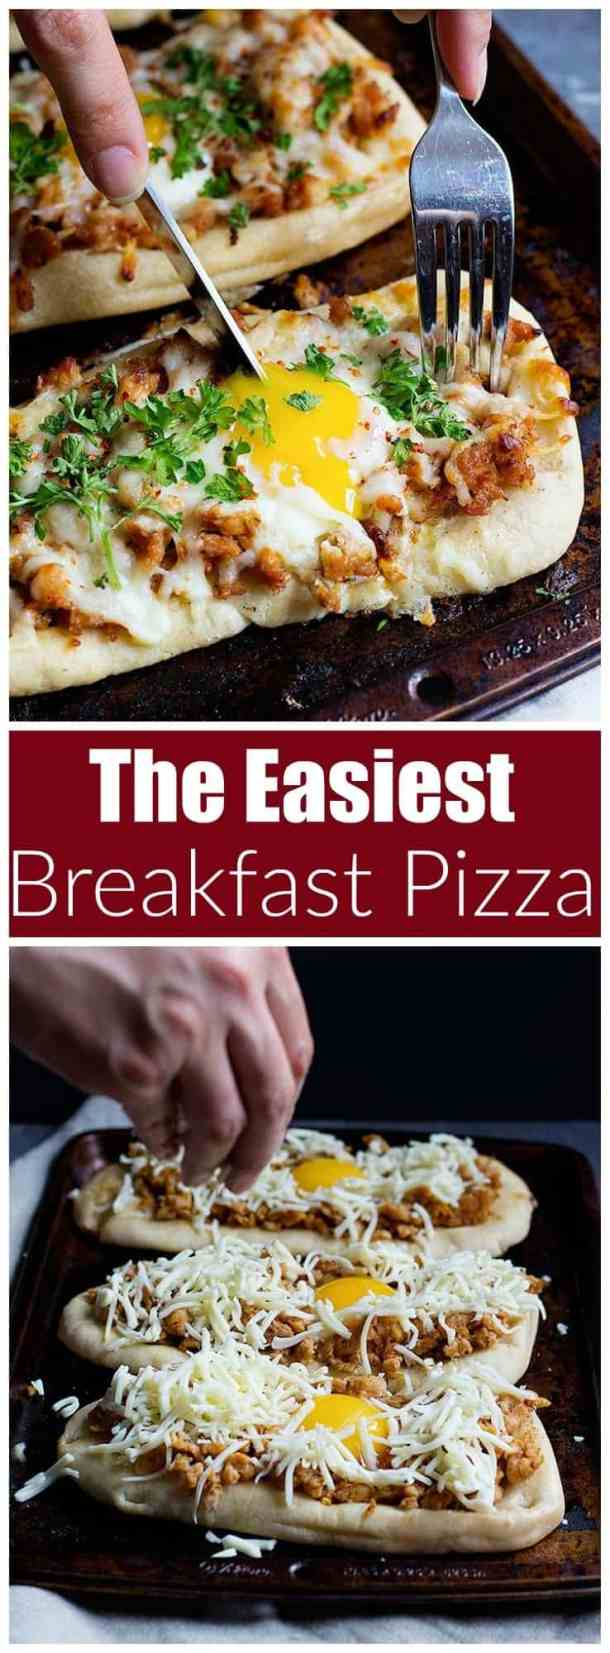 This Breakfast Pizza Recipe is a keeper: it's made with only five ingredients and can be ready in less than 25 minutes. With a golden egg on top, this is the perfect option for brunch, too!